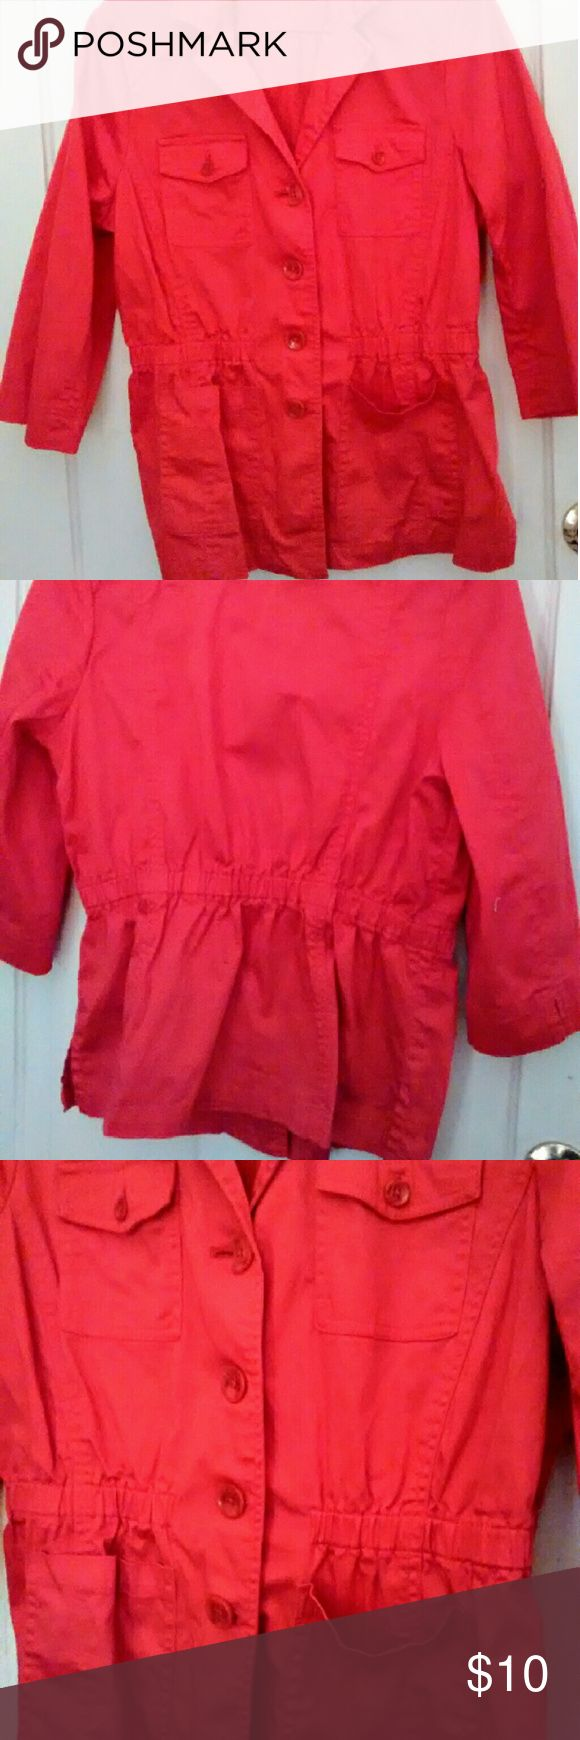 Nice Red Canvas Utility Jacket XL Women's Joan Rivers brand 3/4 sleeve gathered waist button up canvas jacket. Pockets, drawstring waist. One button is broken, but buttons are included. ( Note photo 4) Red, like new!! Women's XL or 14. Joan Rivers Jackets & Coats Utility Jackets